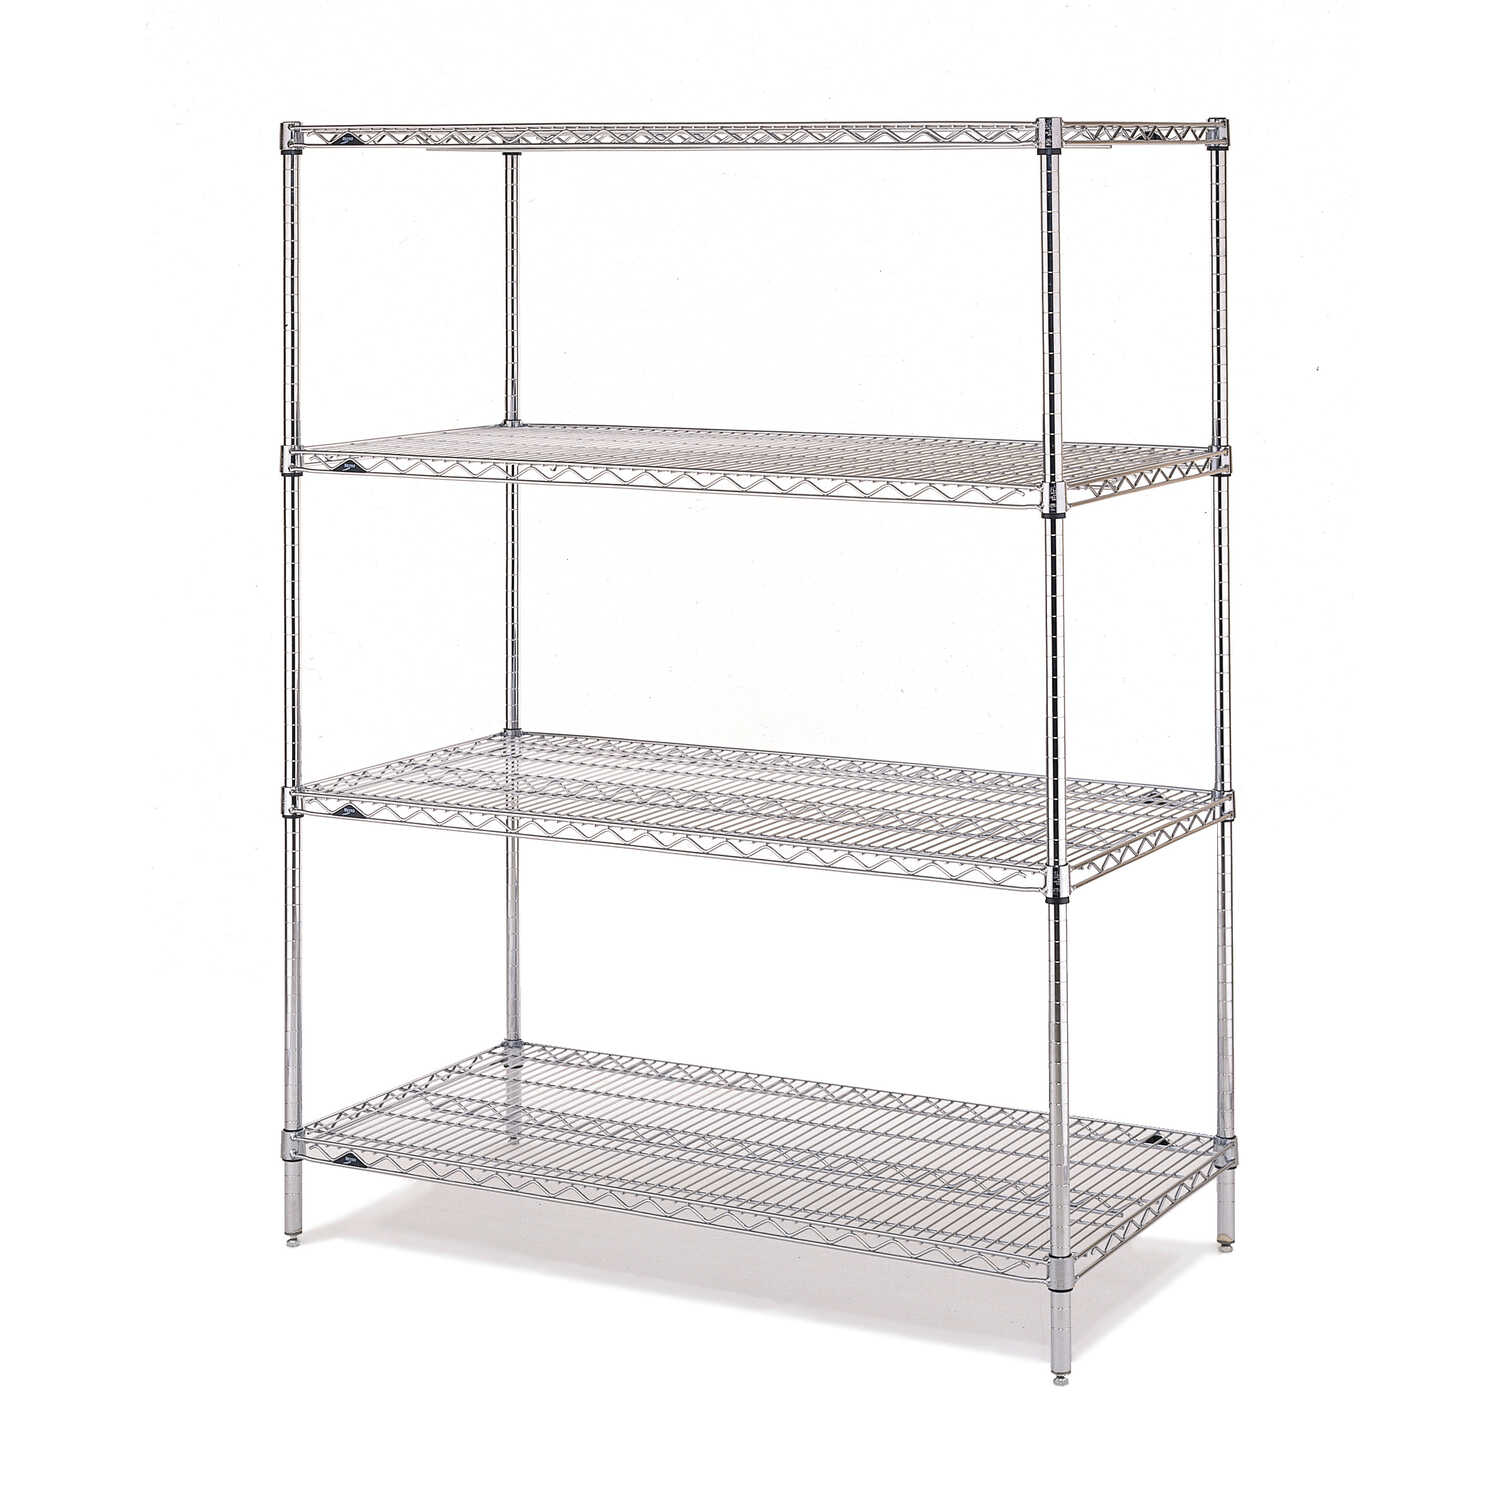 InterMetro  34.5 in. H x 1 in. W x 1 in. D Steel  Shelf Post